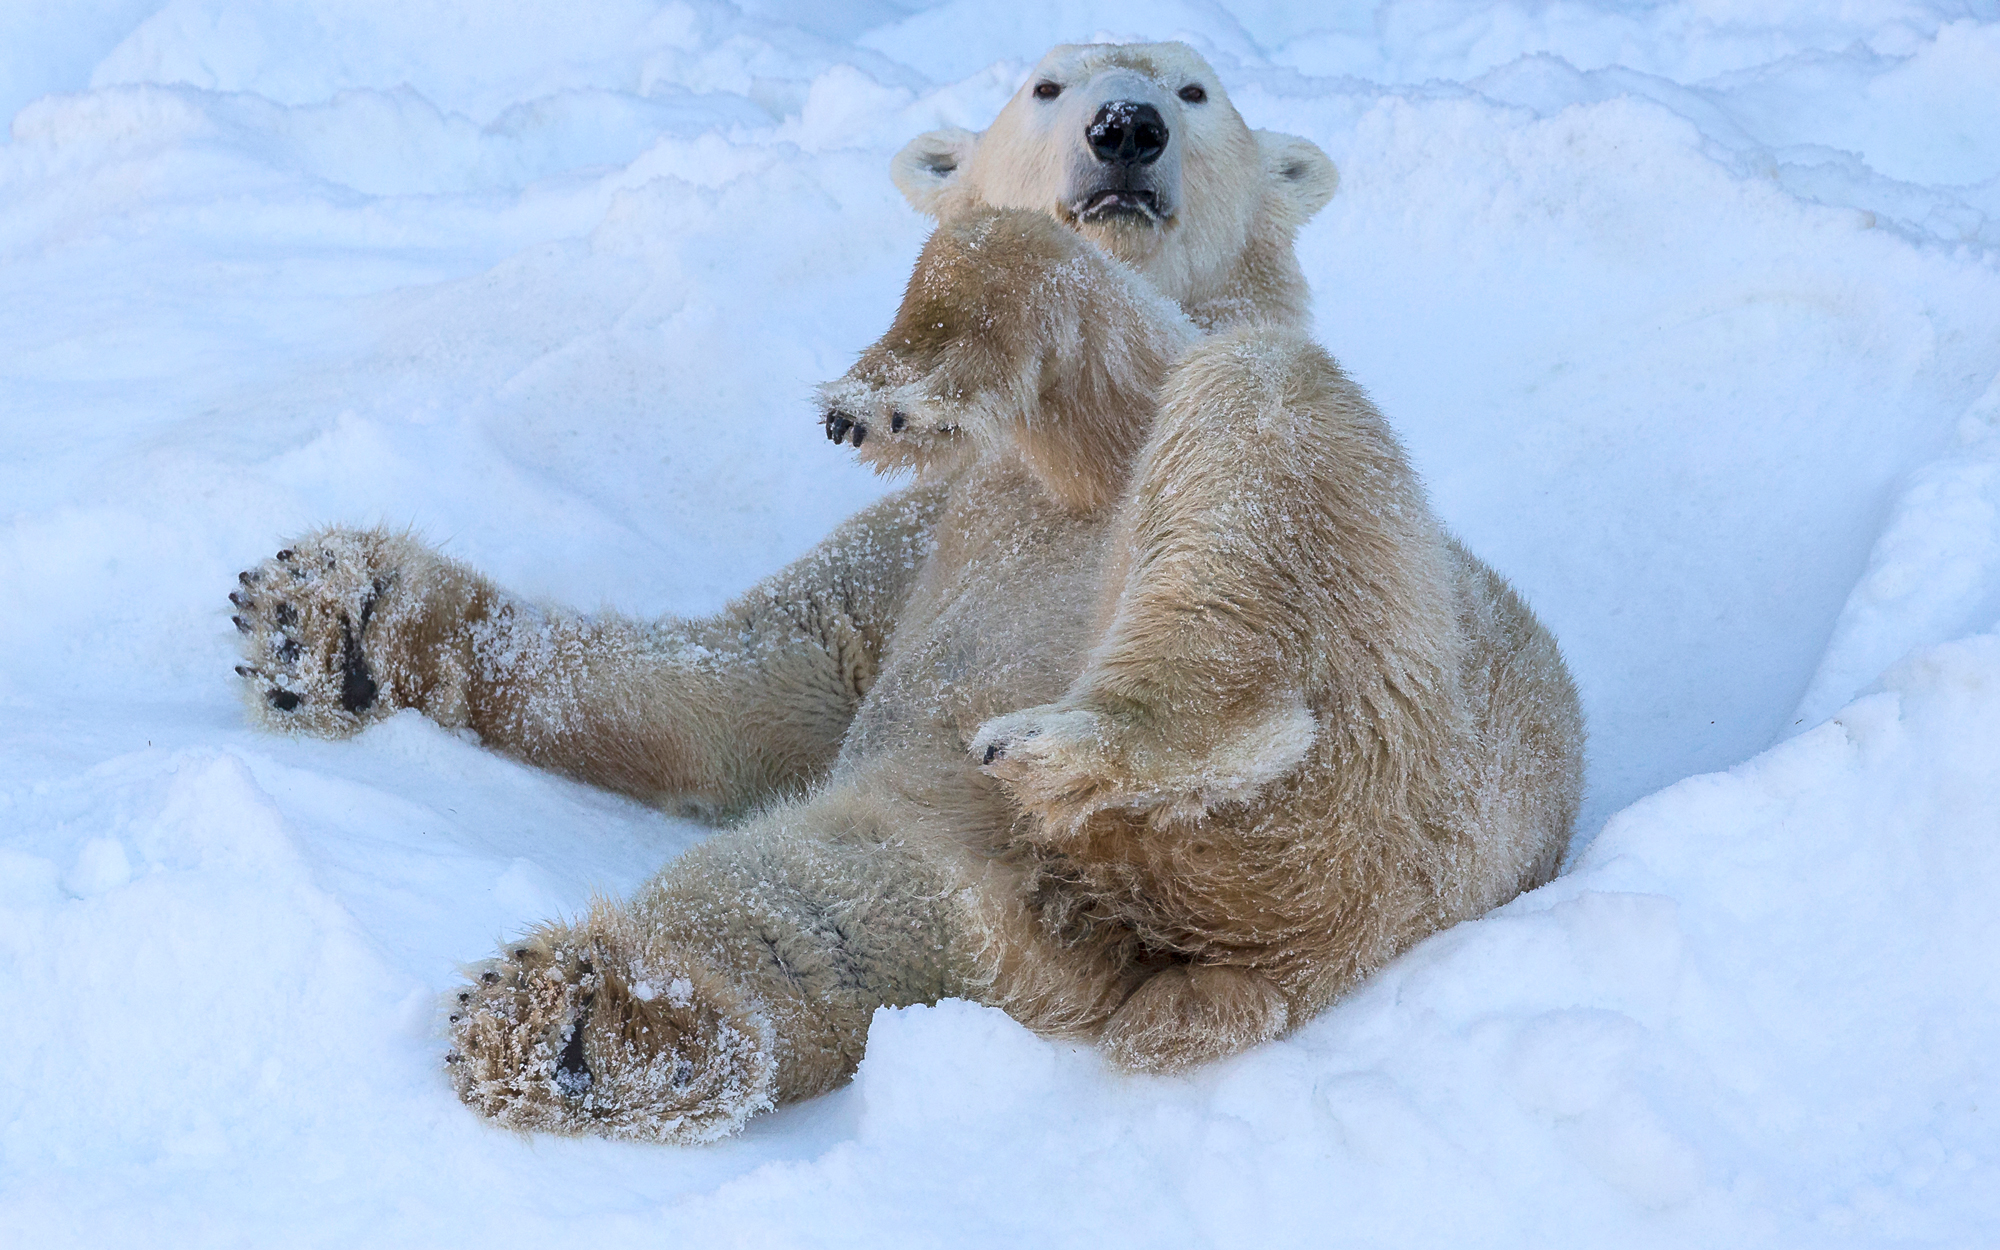 Polar Bears at the San Diego Zoo are Having a White Christmas